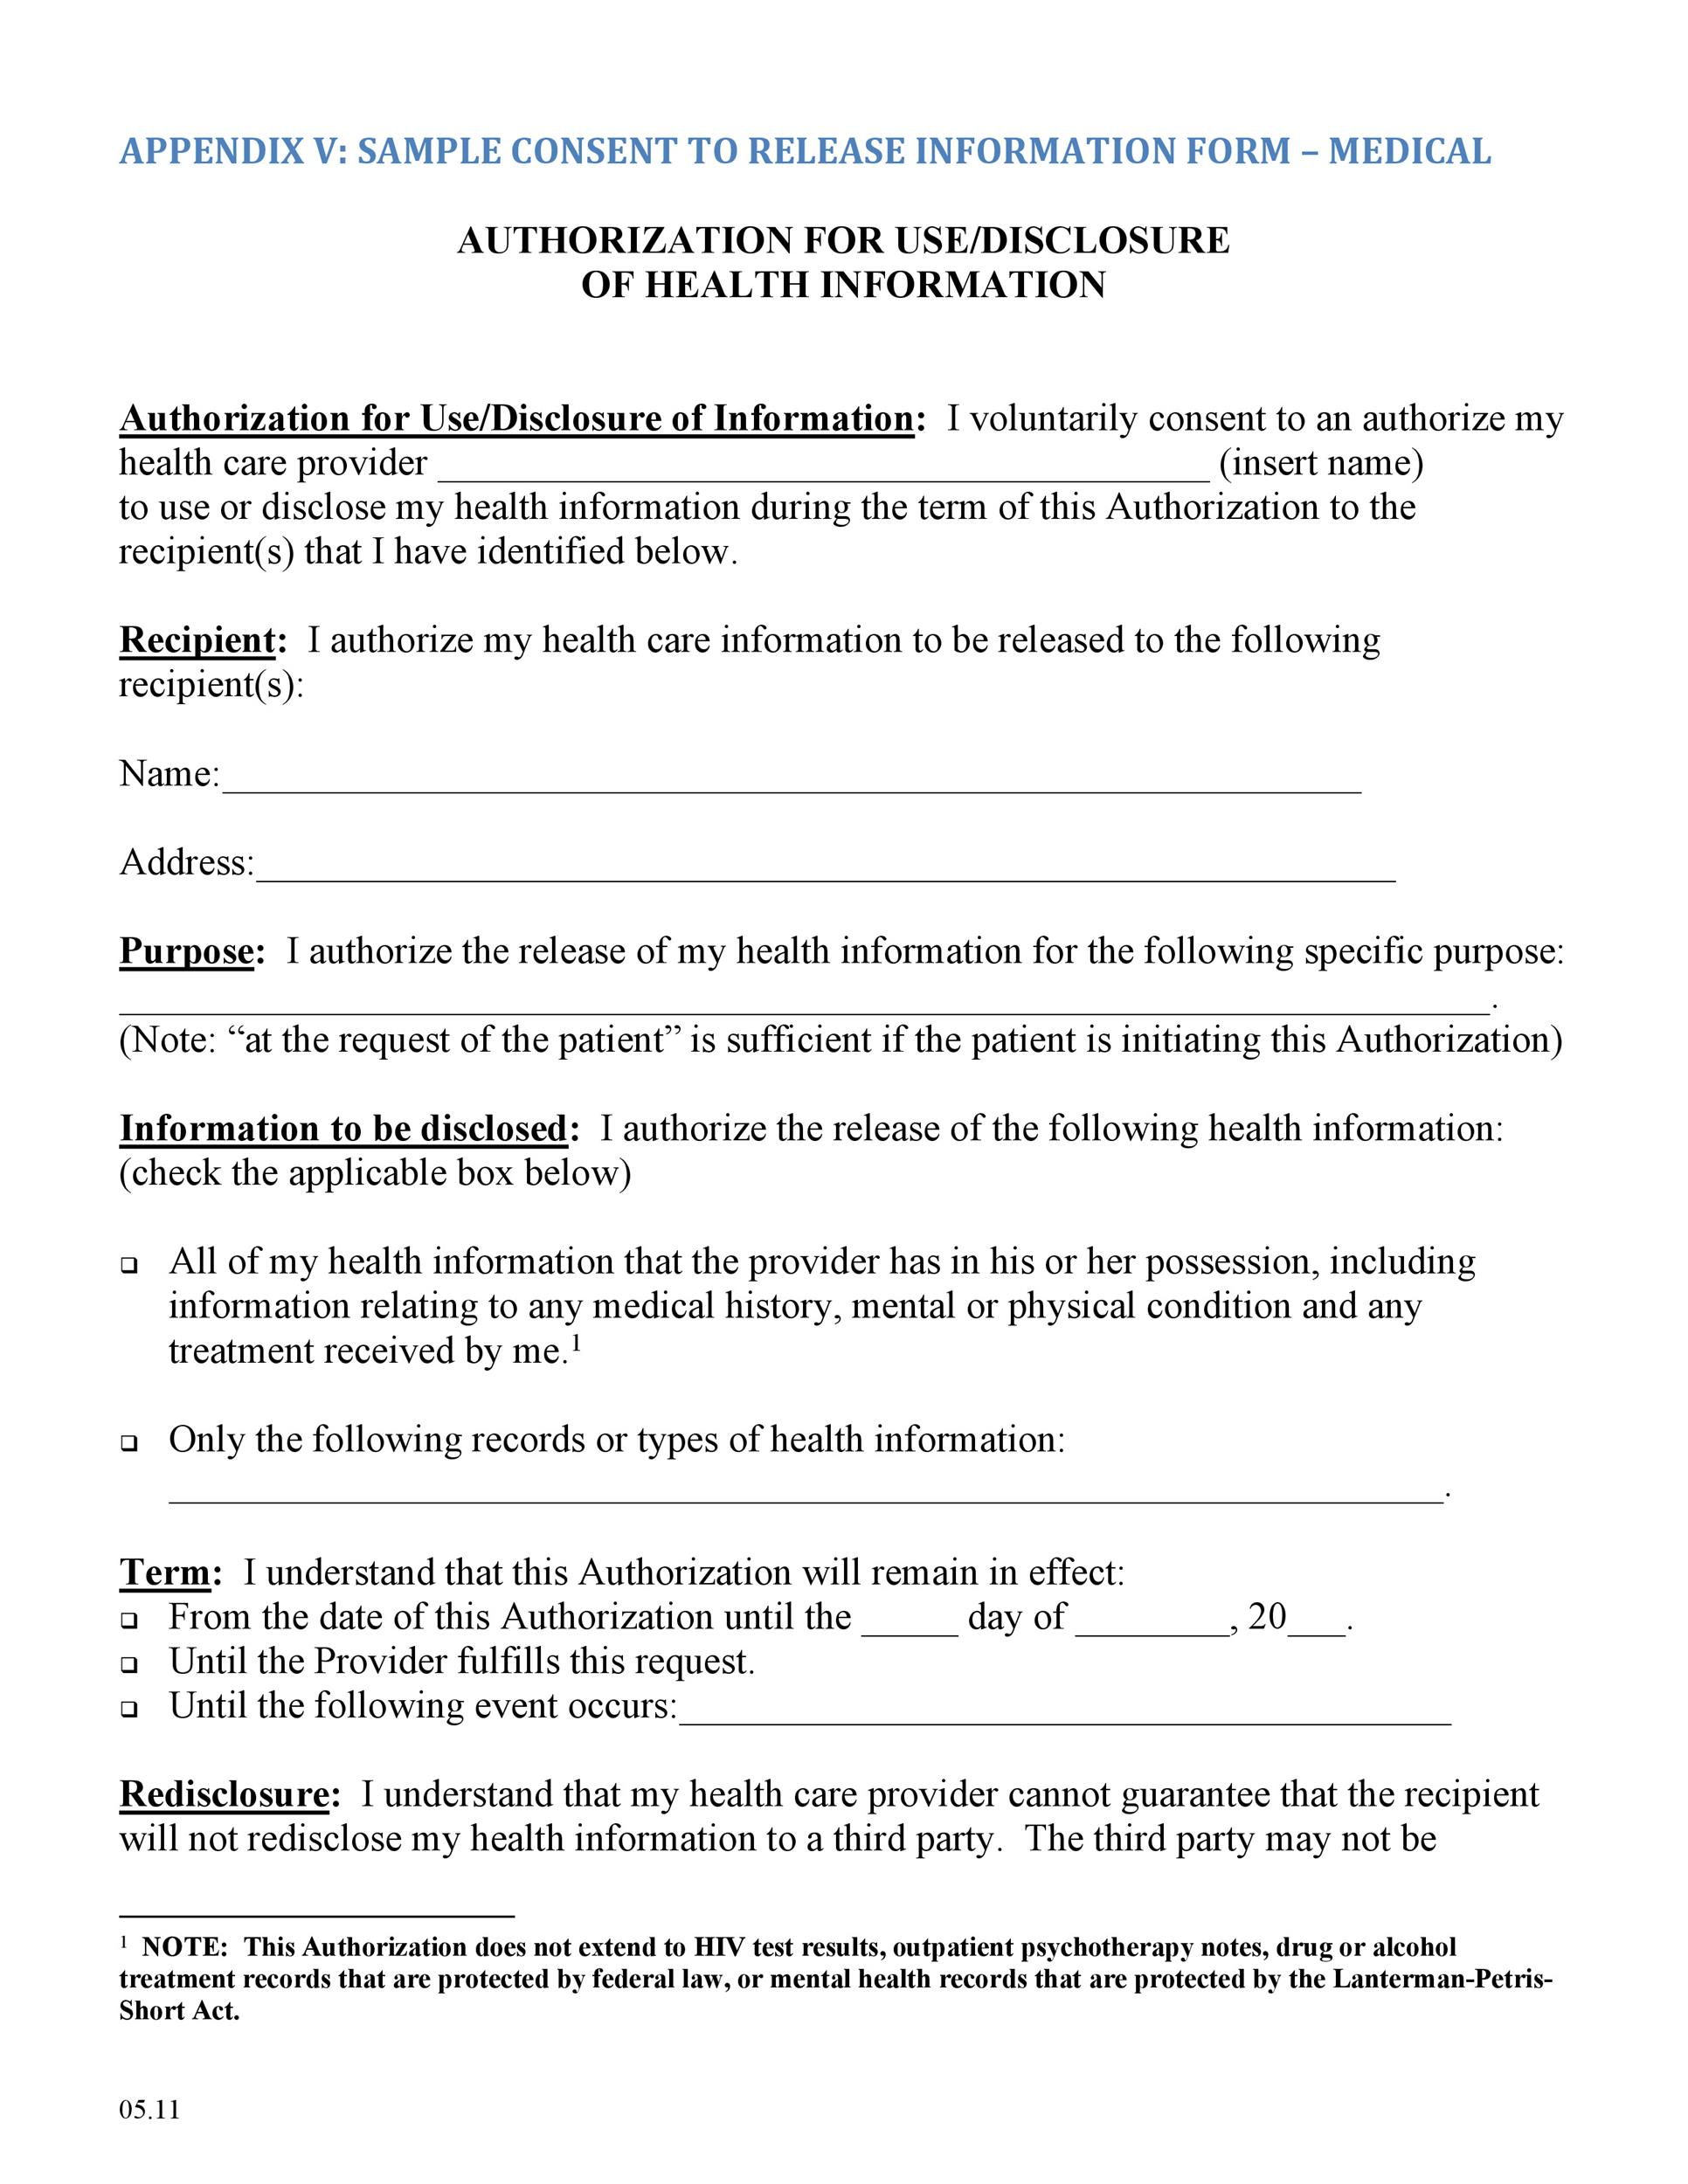 Free Medical Release Form 01